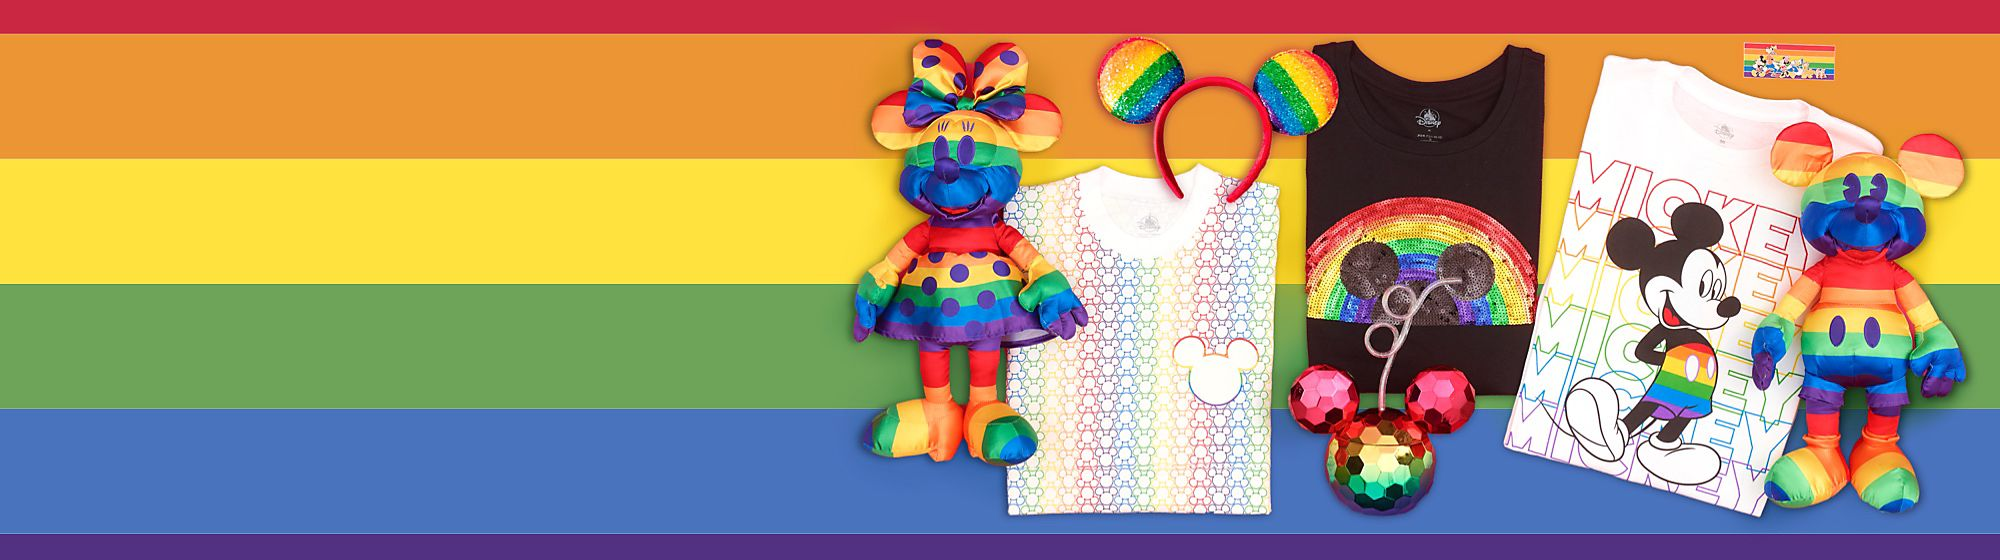 Disney Rainbow Collection In celebration of Pride Month 2020, shopDisney.co.uk has released the Rainbow Disney Collection, an exclusive range including soft toys, accessories and pin set. In recognition of Pride Month and the collection, Disney PRIDE UK will be donating to non-profit Diversity Role Models. ?